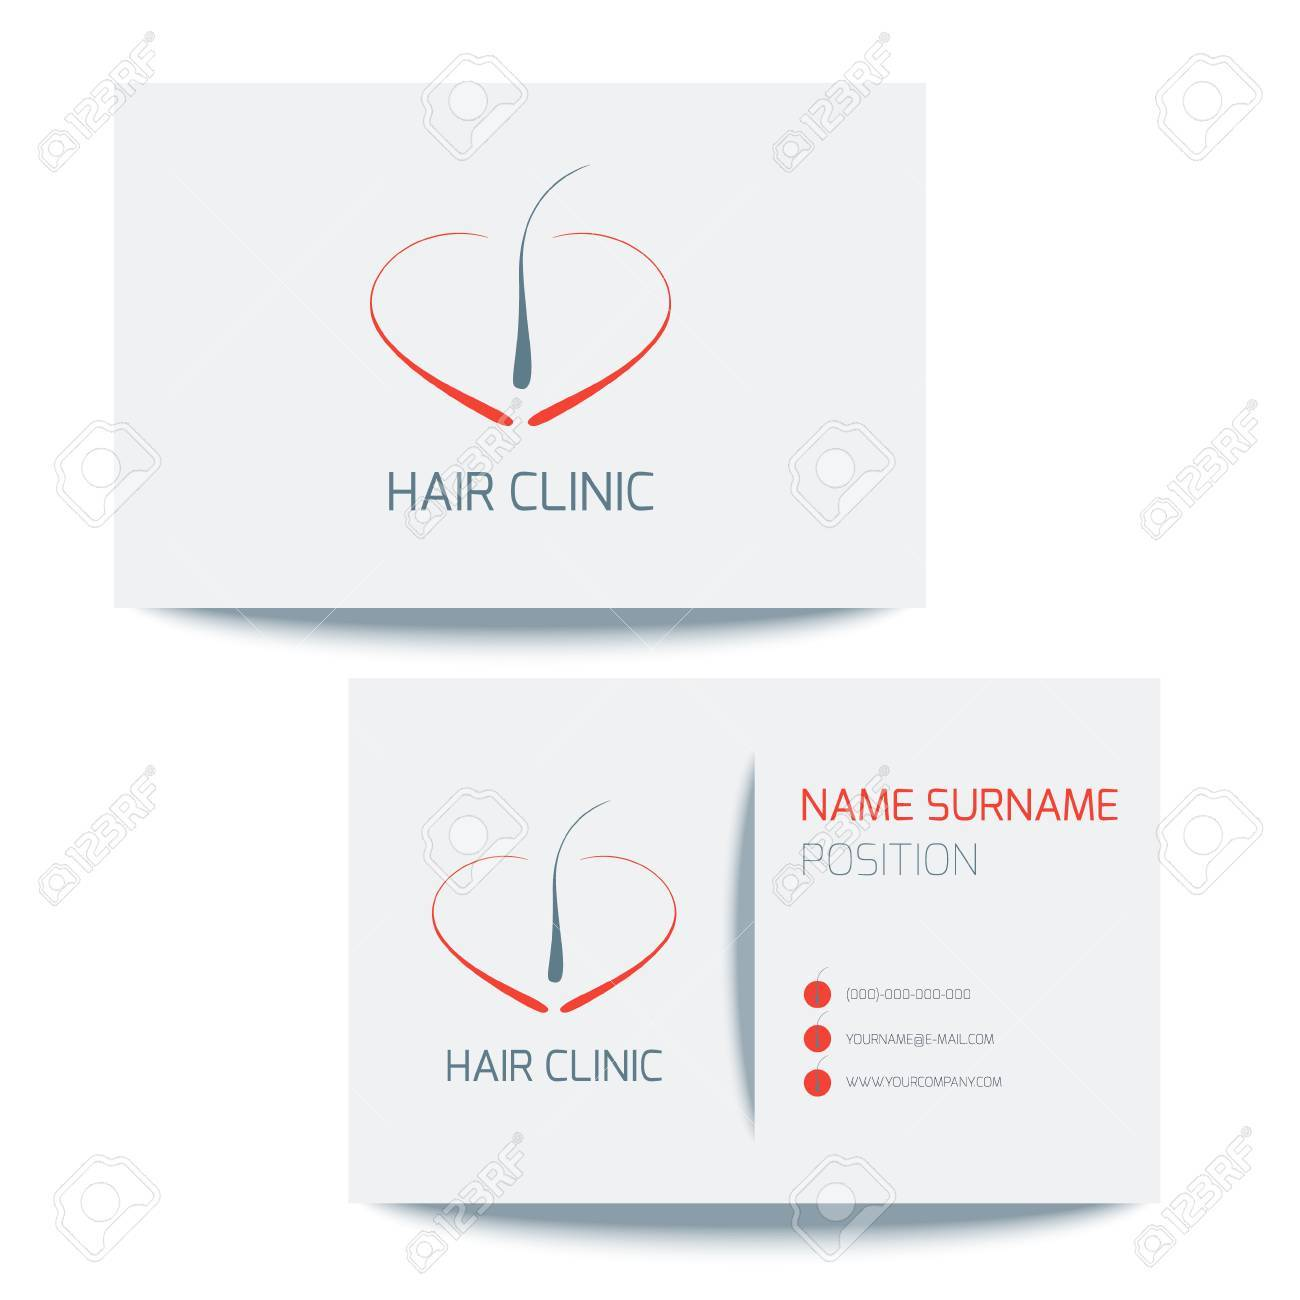 Medical business card template with hair follicle icon vector medical business card template with hair follicle icon vector hair bulb graphic design for hair wajeb Image collections